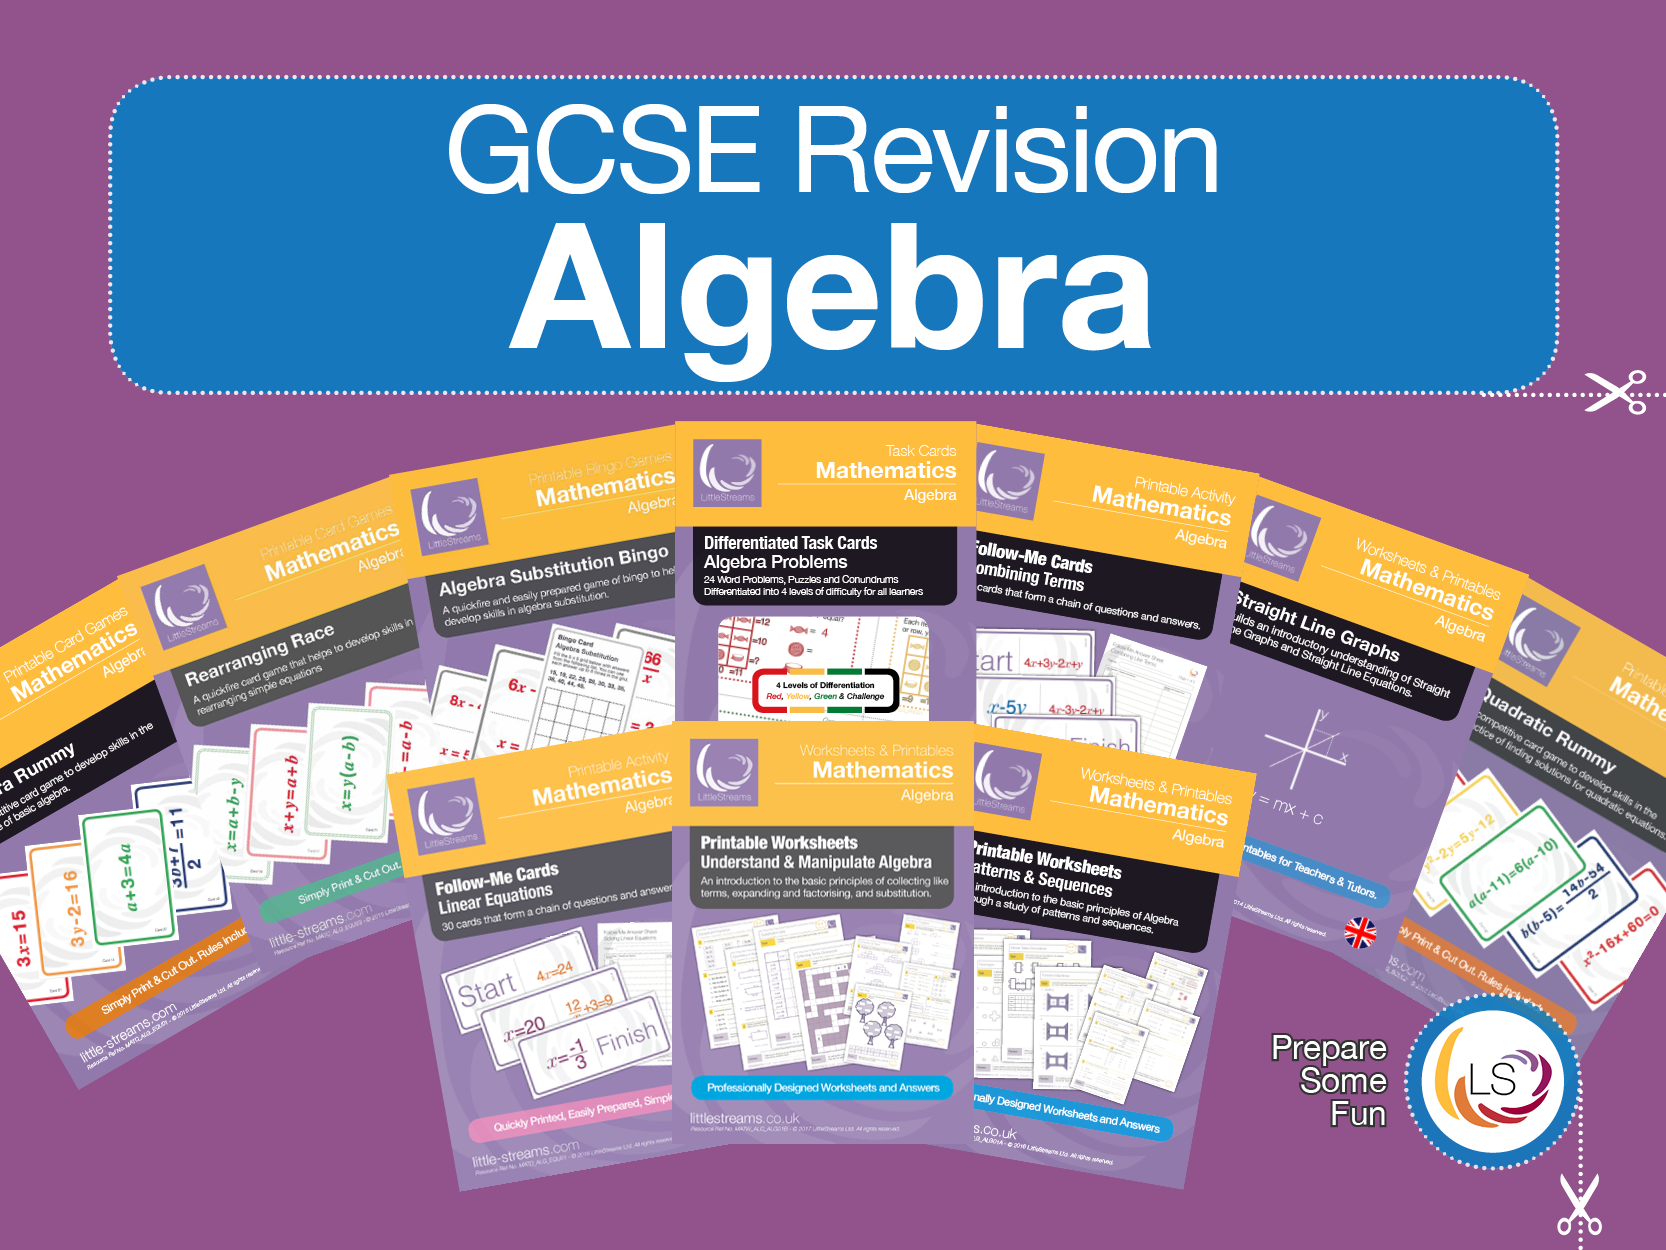 Algebra GCSE revision Resources